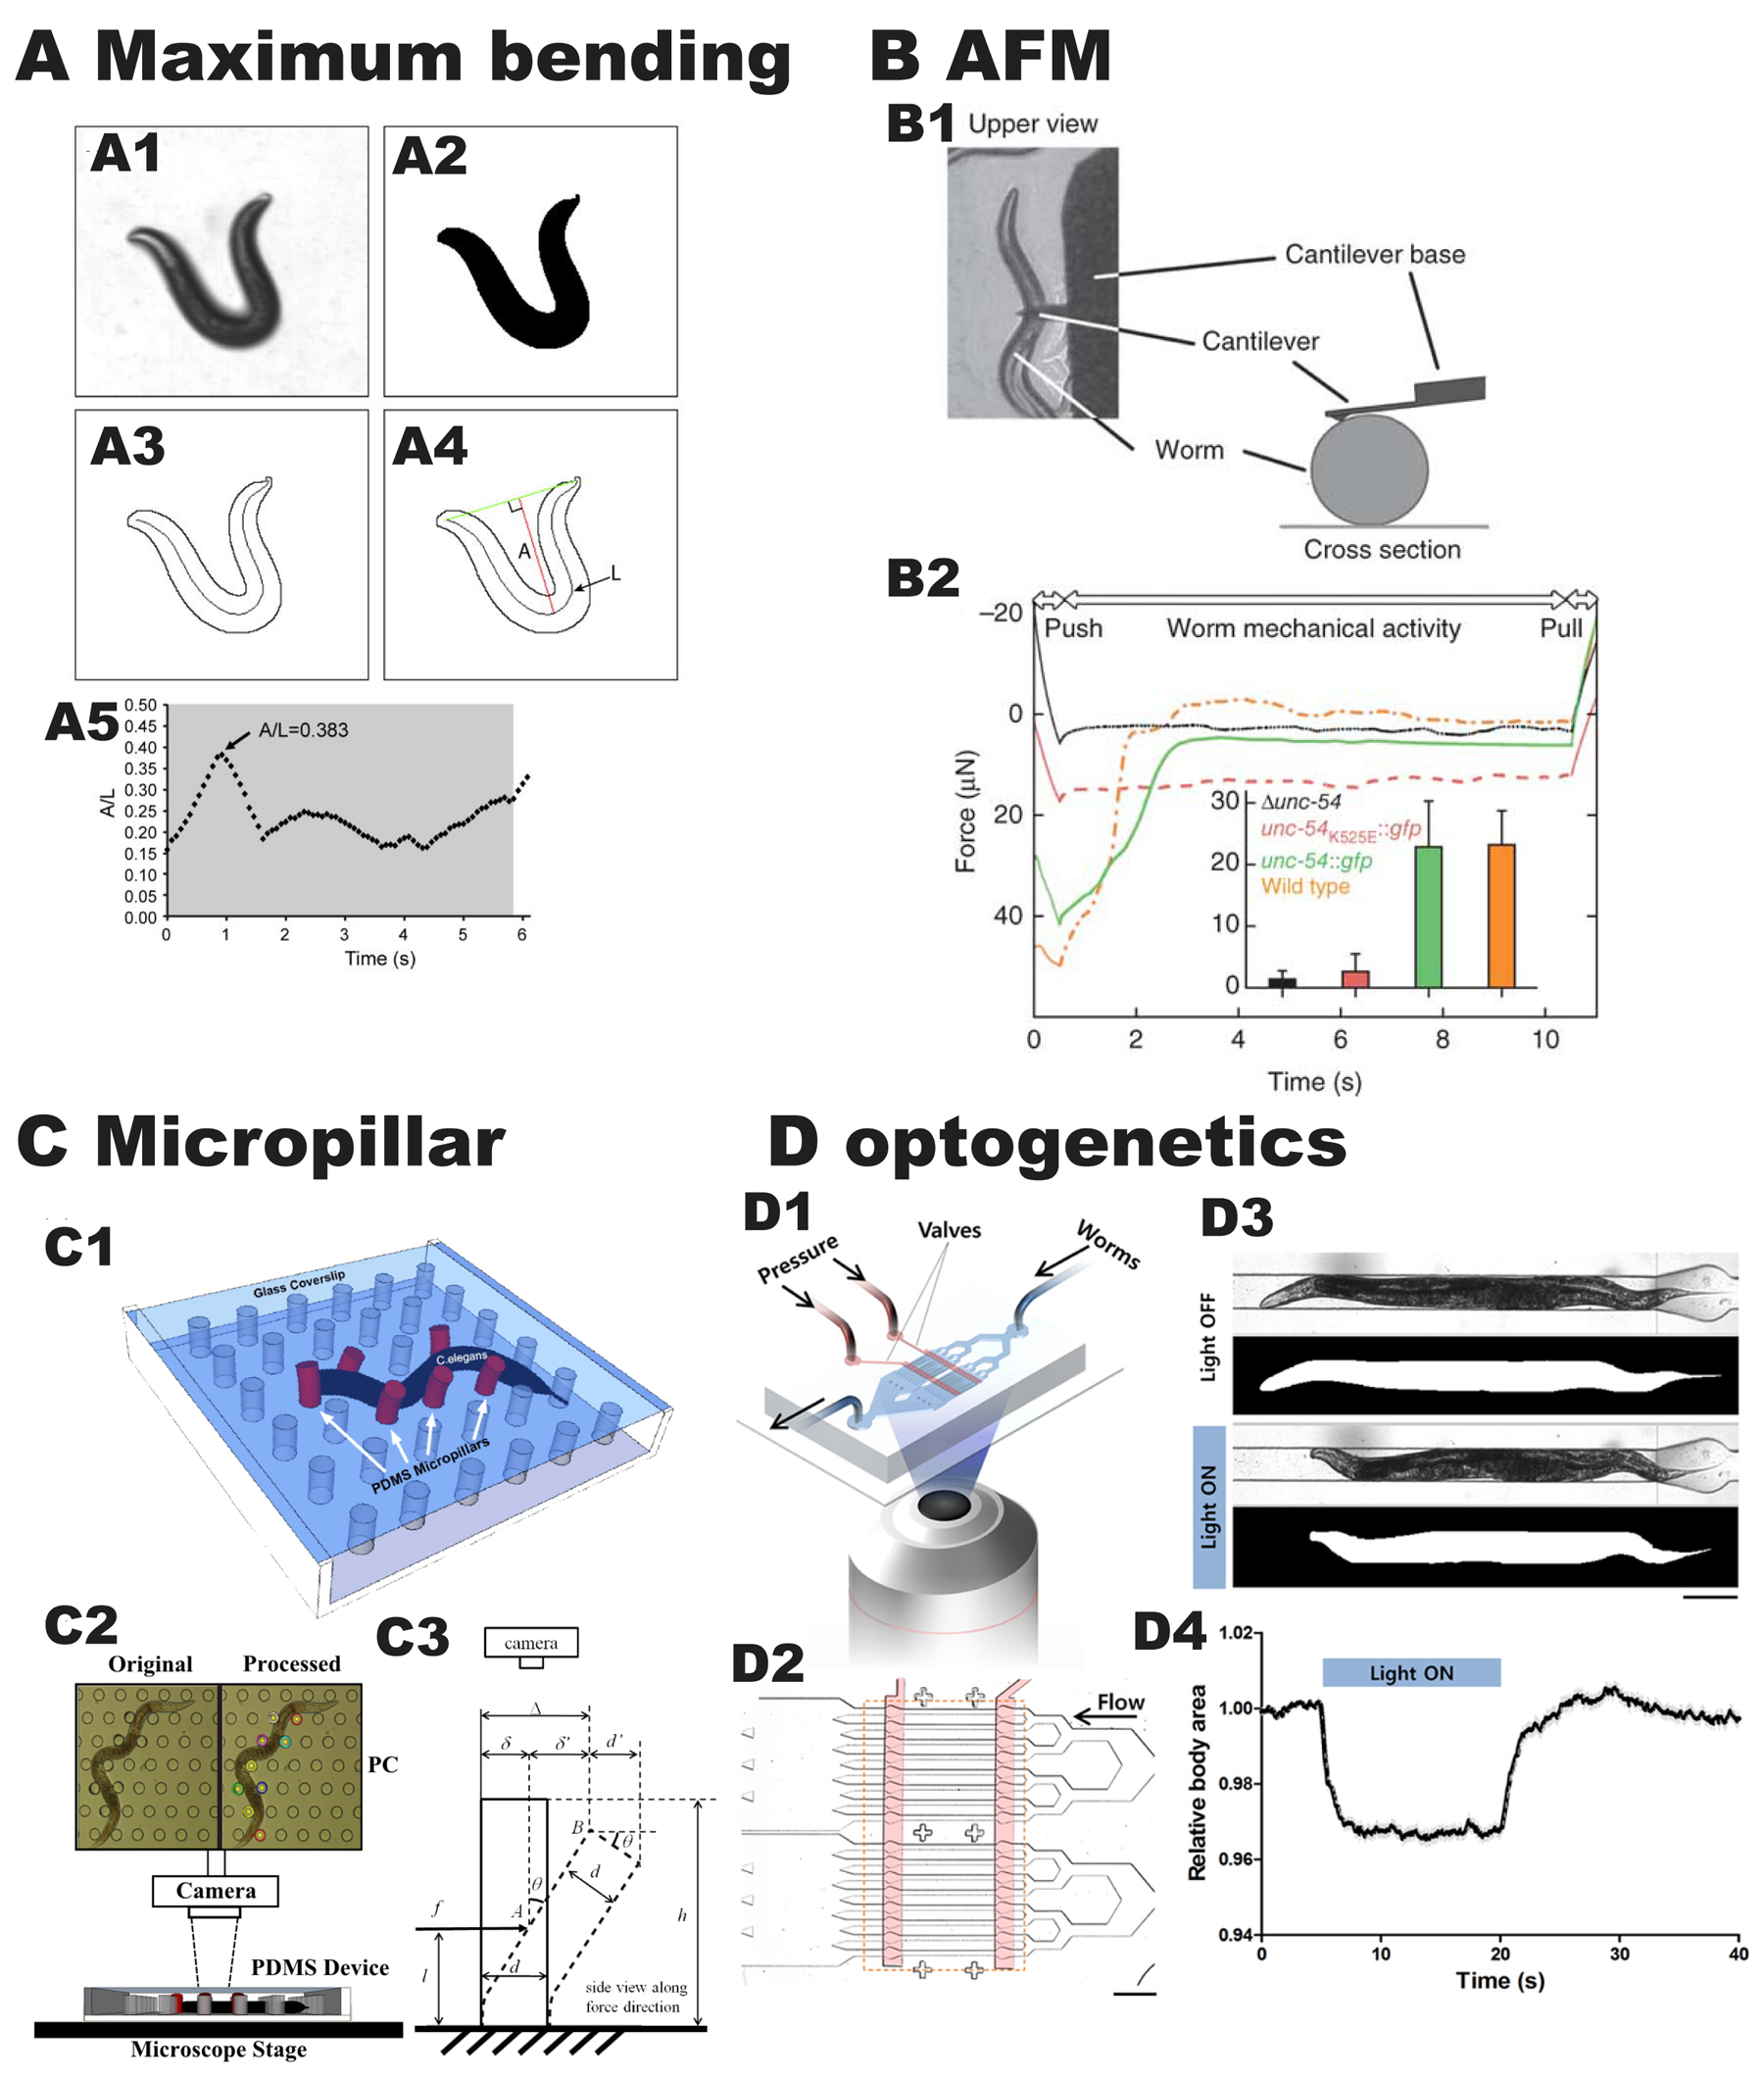 Recently Reported Methods To Assess The Locomotion And Force Generated By C Elegans A Measurement Of Maximum Bending Amplitude A L As A Worm Moves